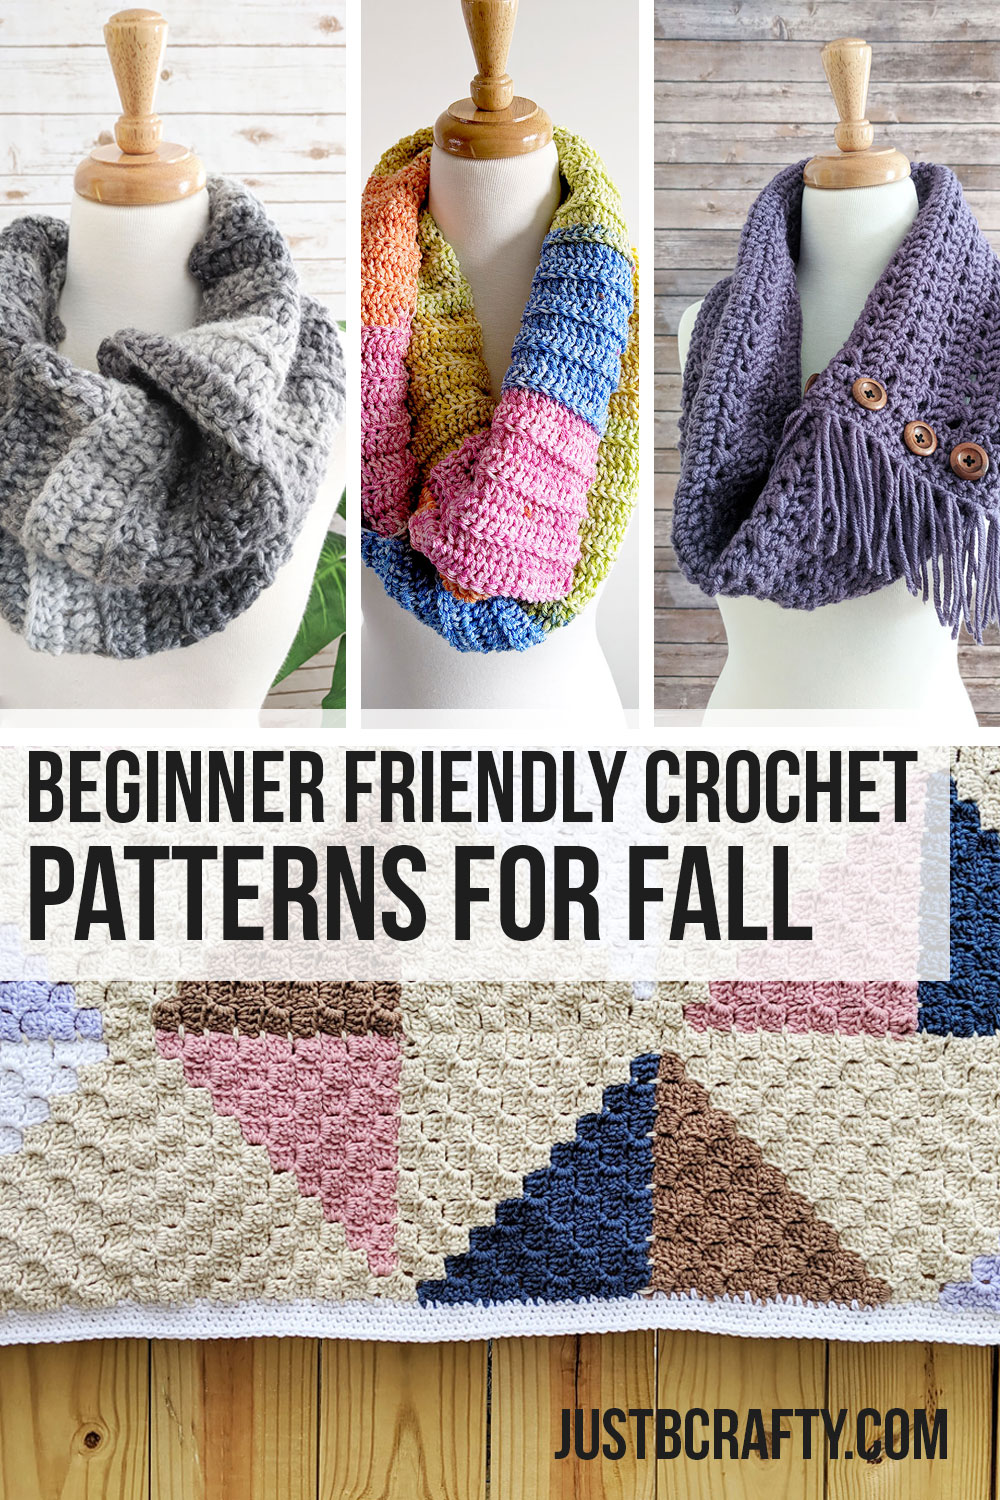 Beginner Friendly Crochet Patterns for Fall - Free crochet patterns by Just Be Crafty